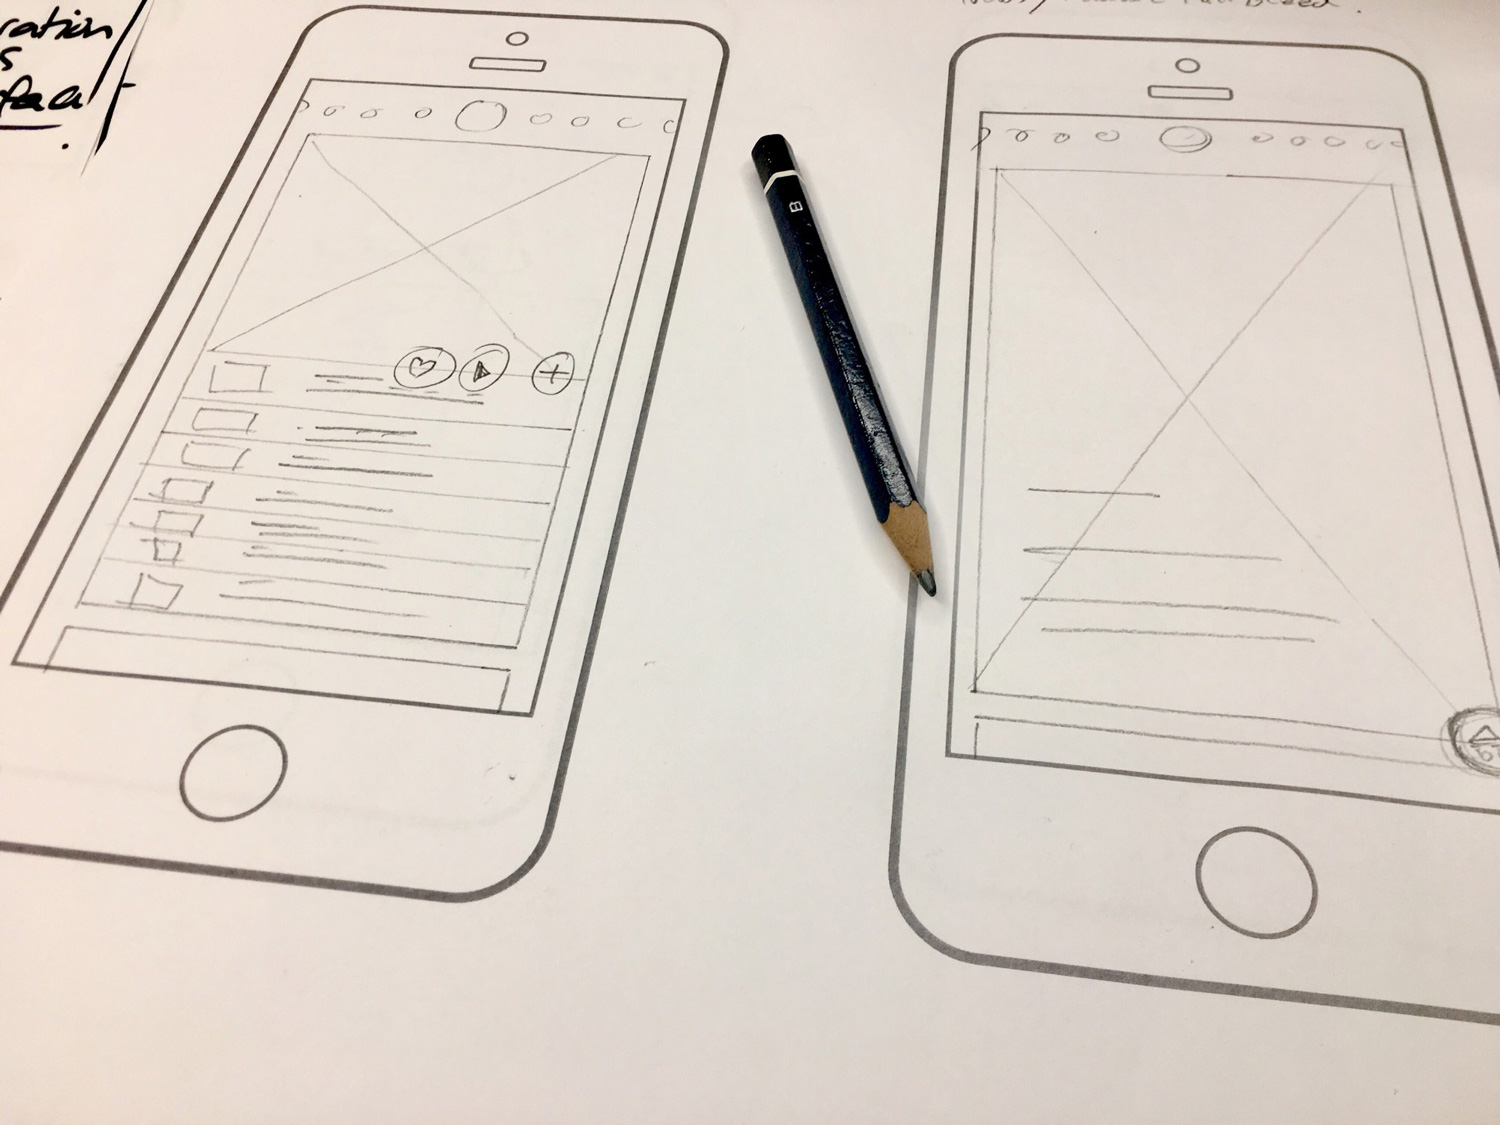 User interface design of the mobile app